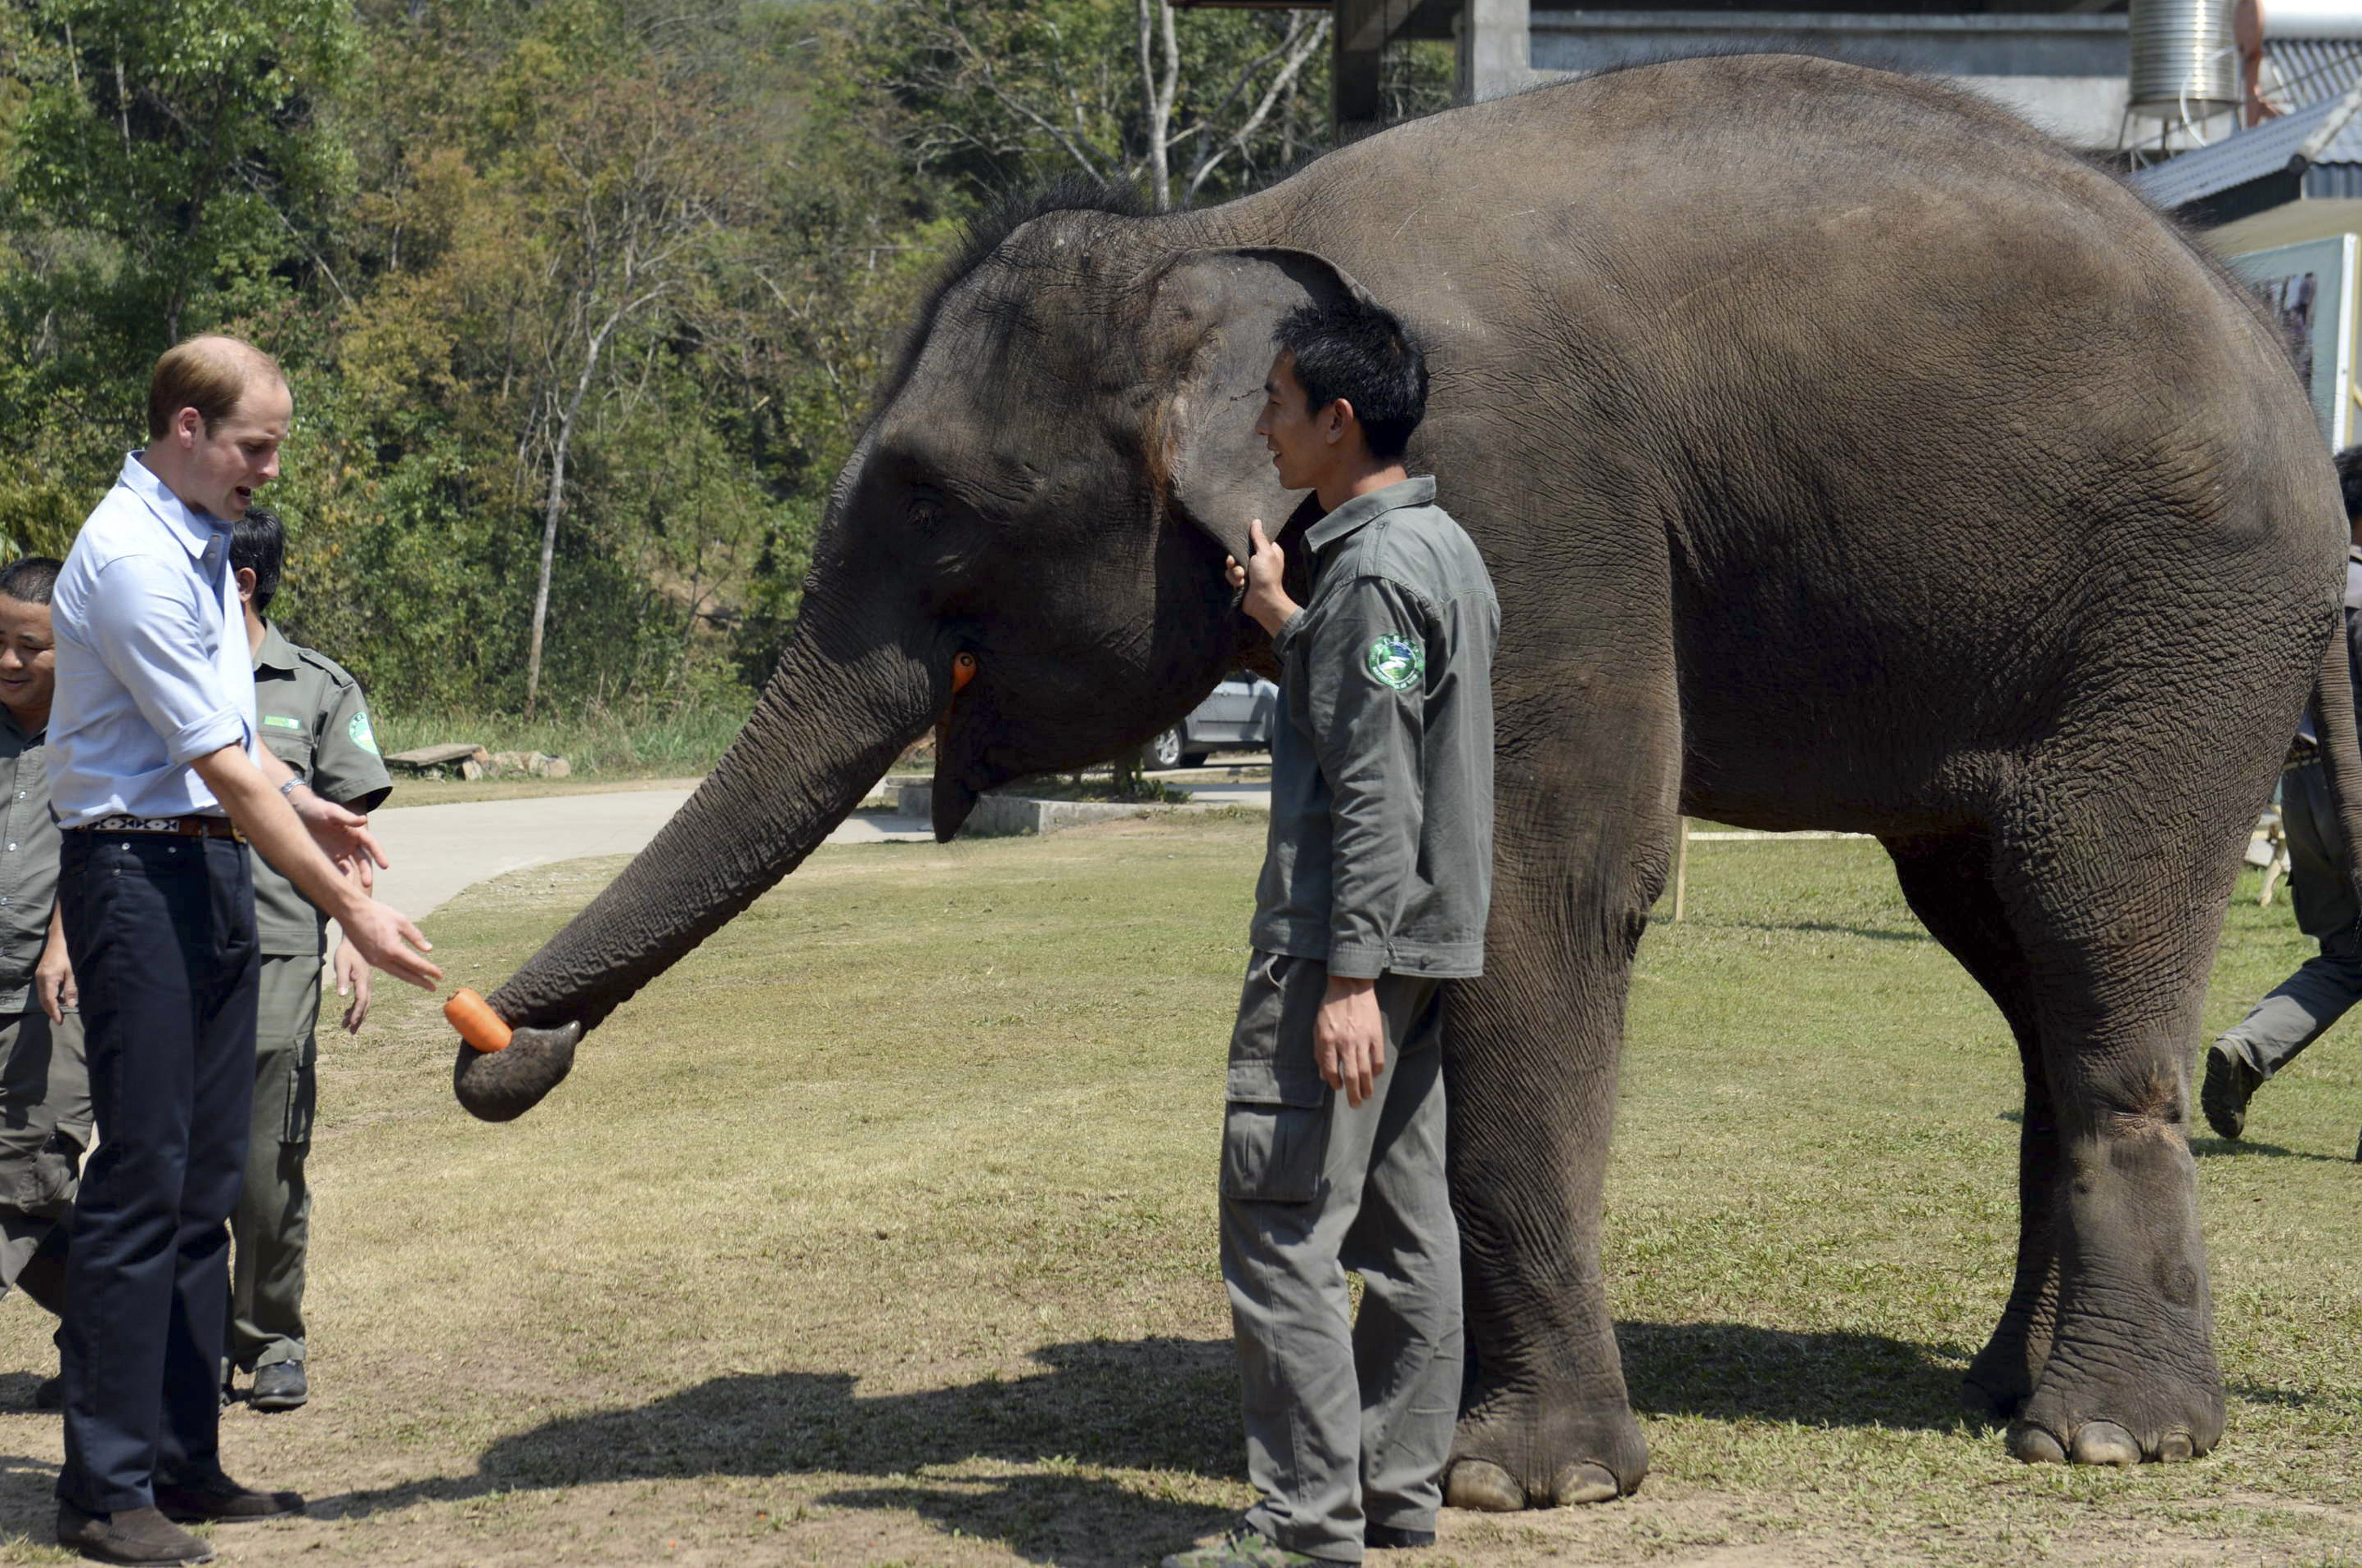 Britain's Prince William feeds Ran Ran, a 13-year-old female elephant in southwest China's Yunnan province on March 4, 2015.